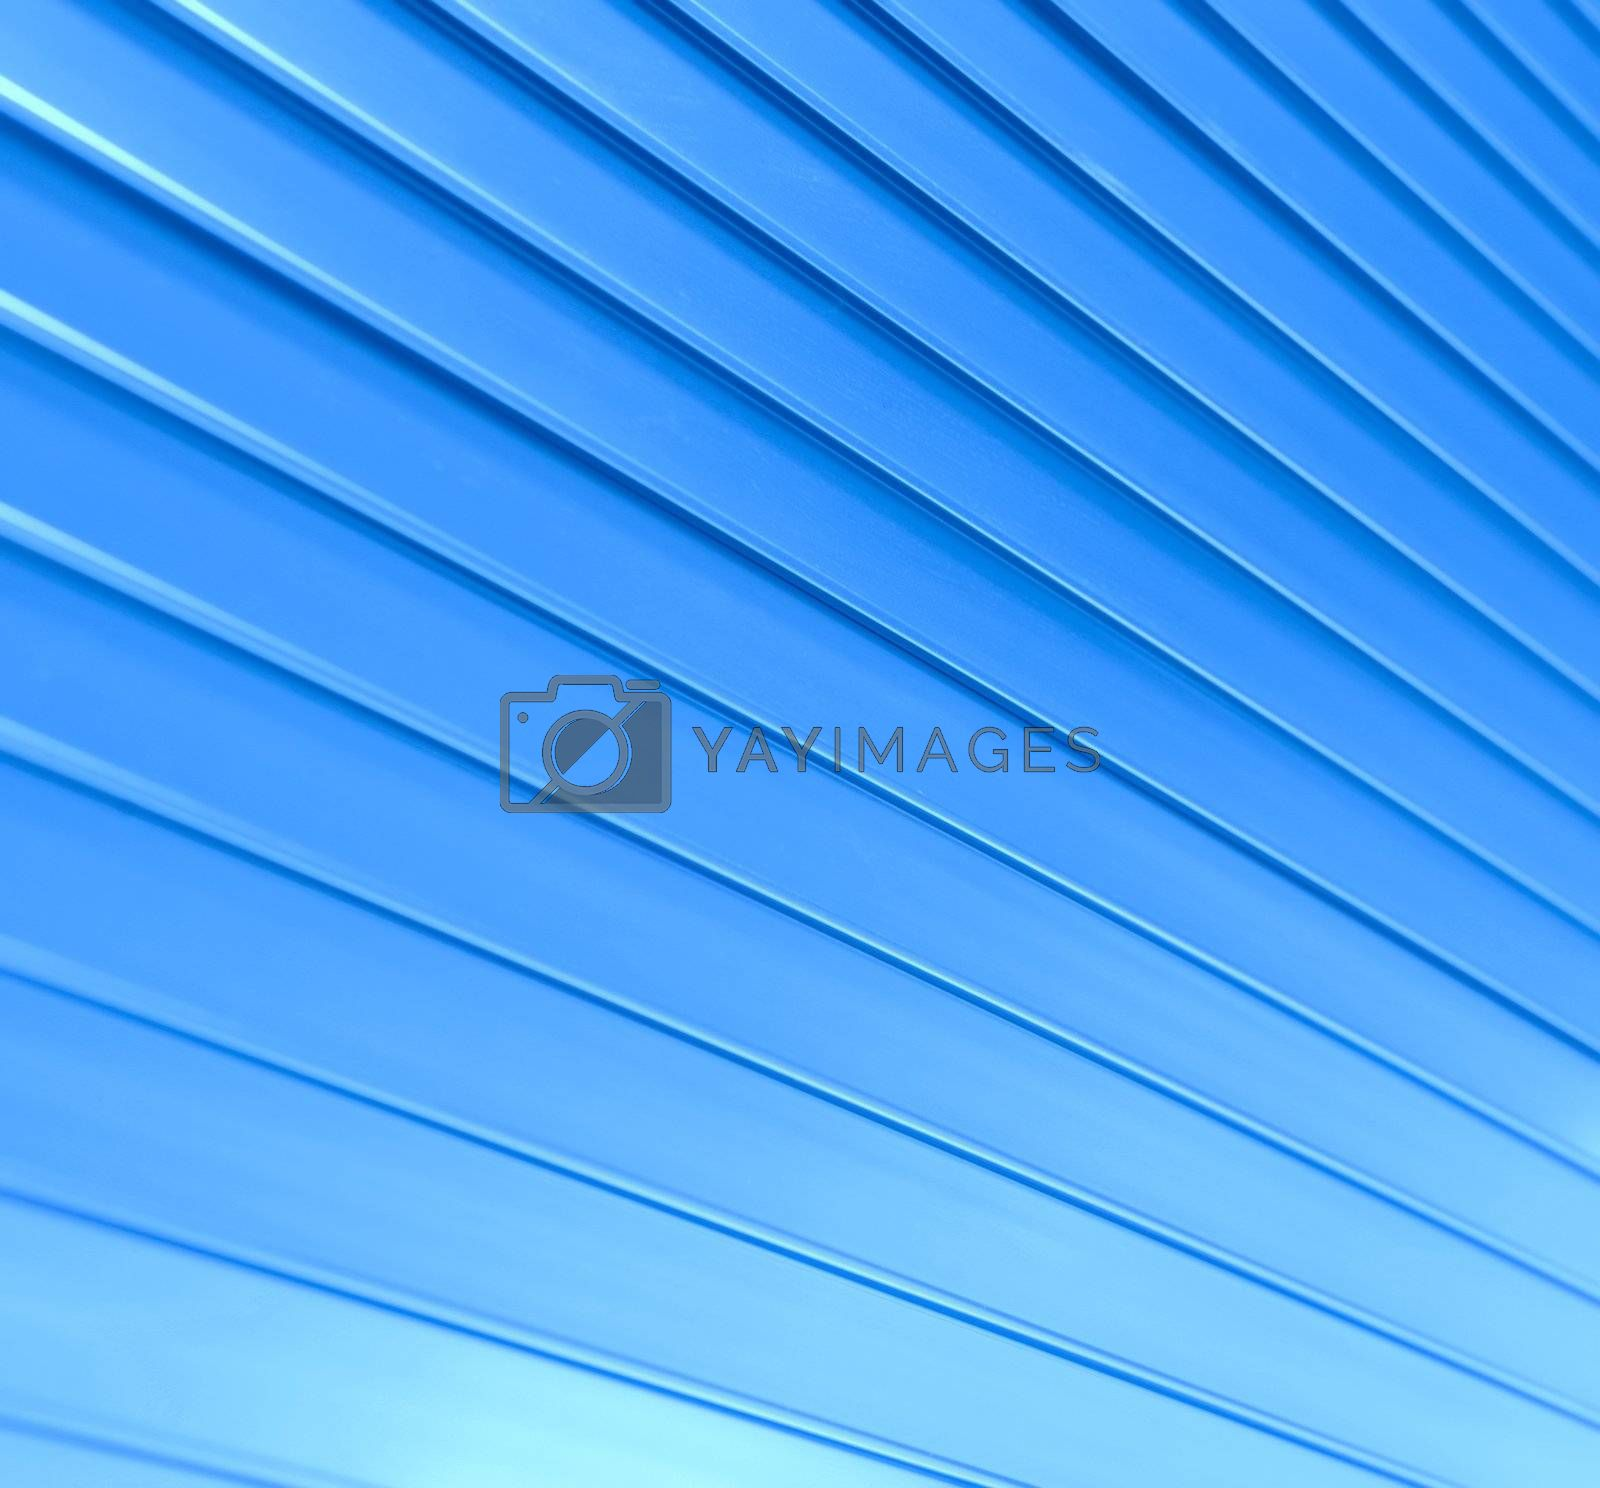 Royalty free image of blue diagonal lines by Astroid